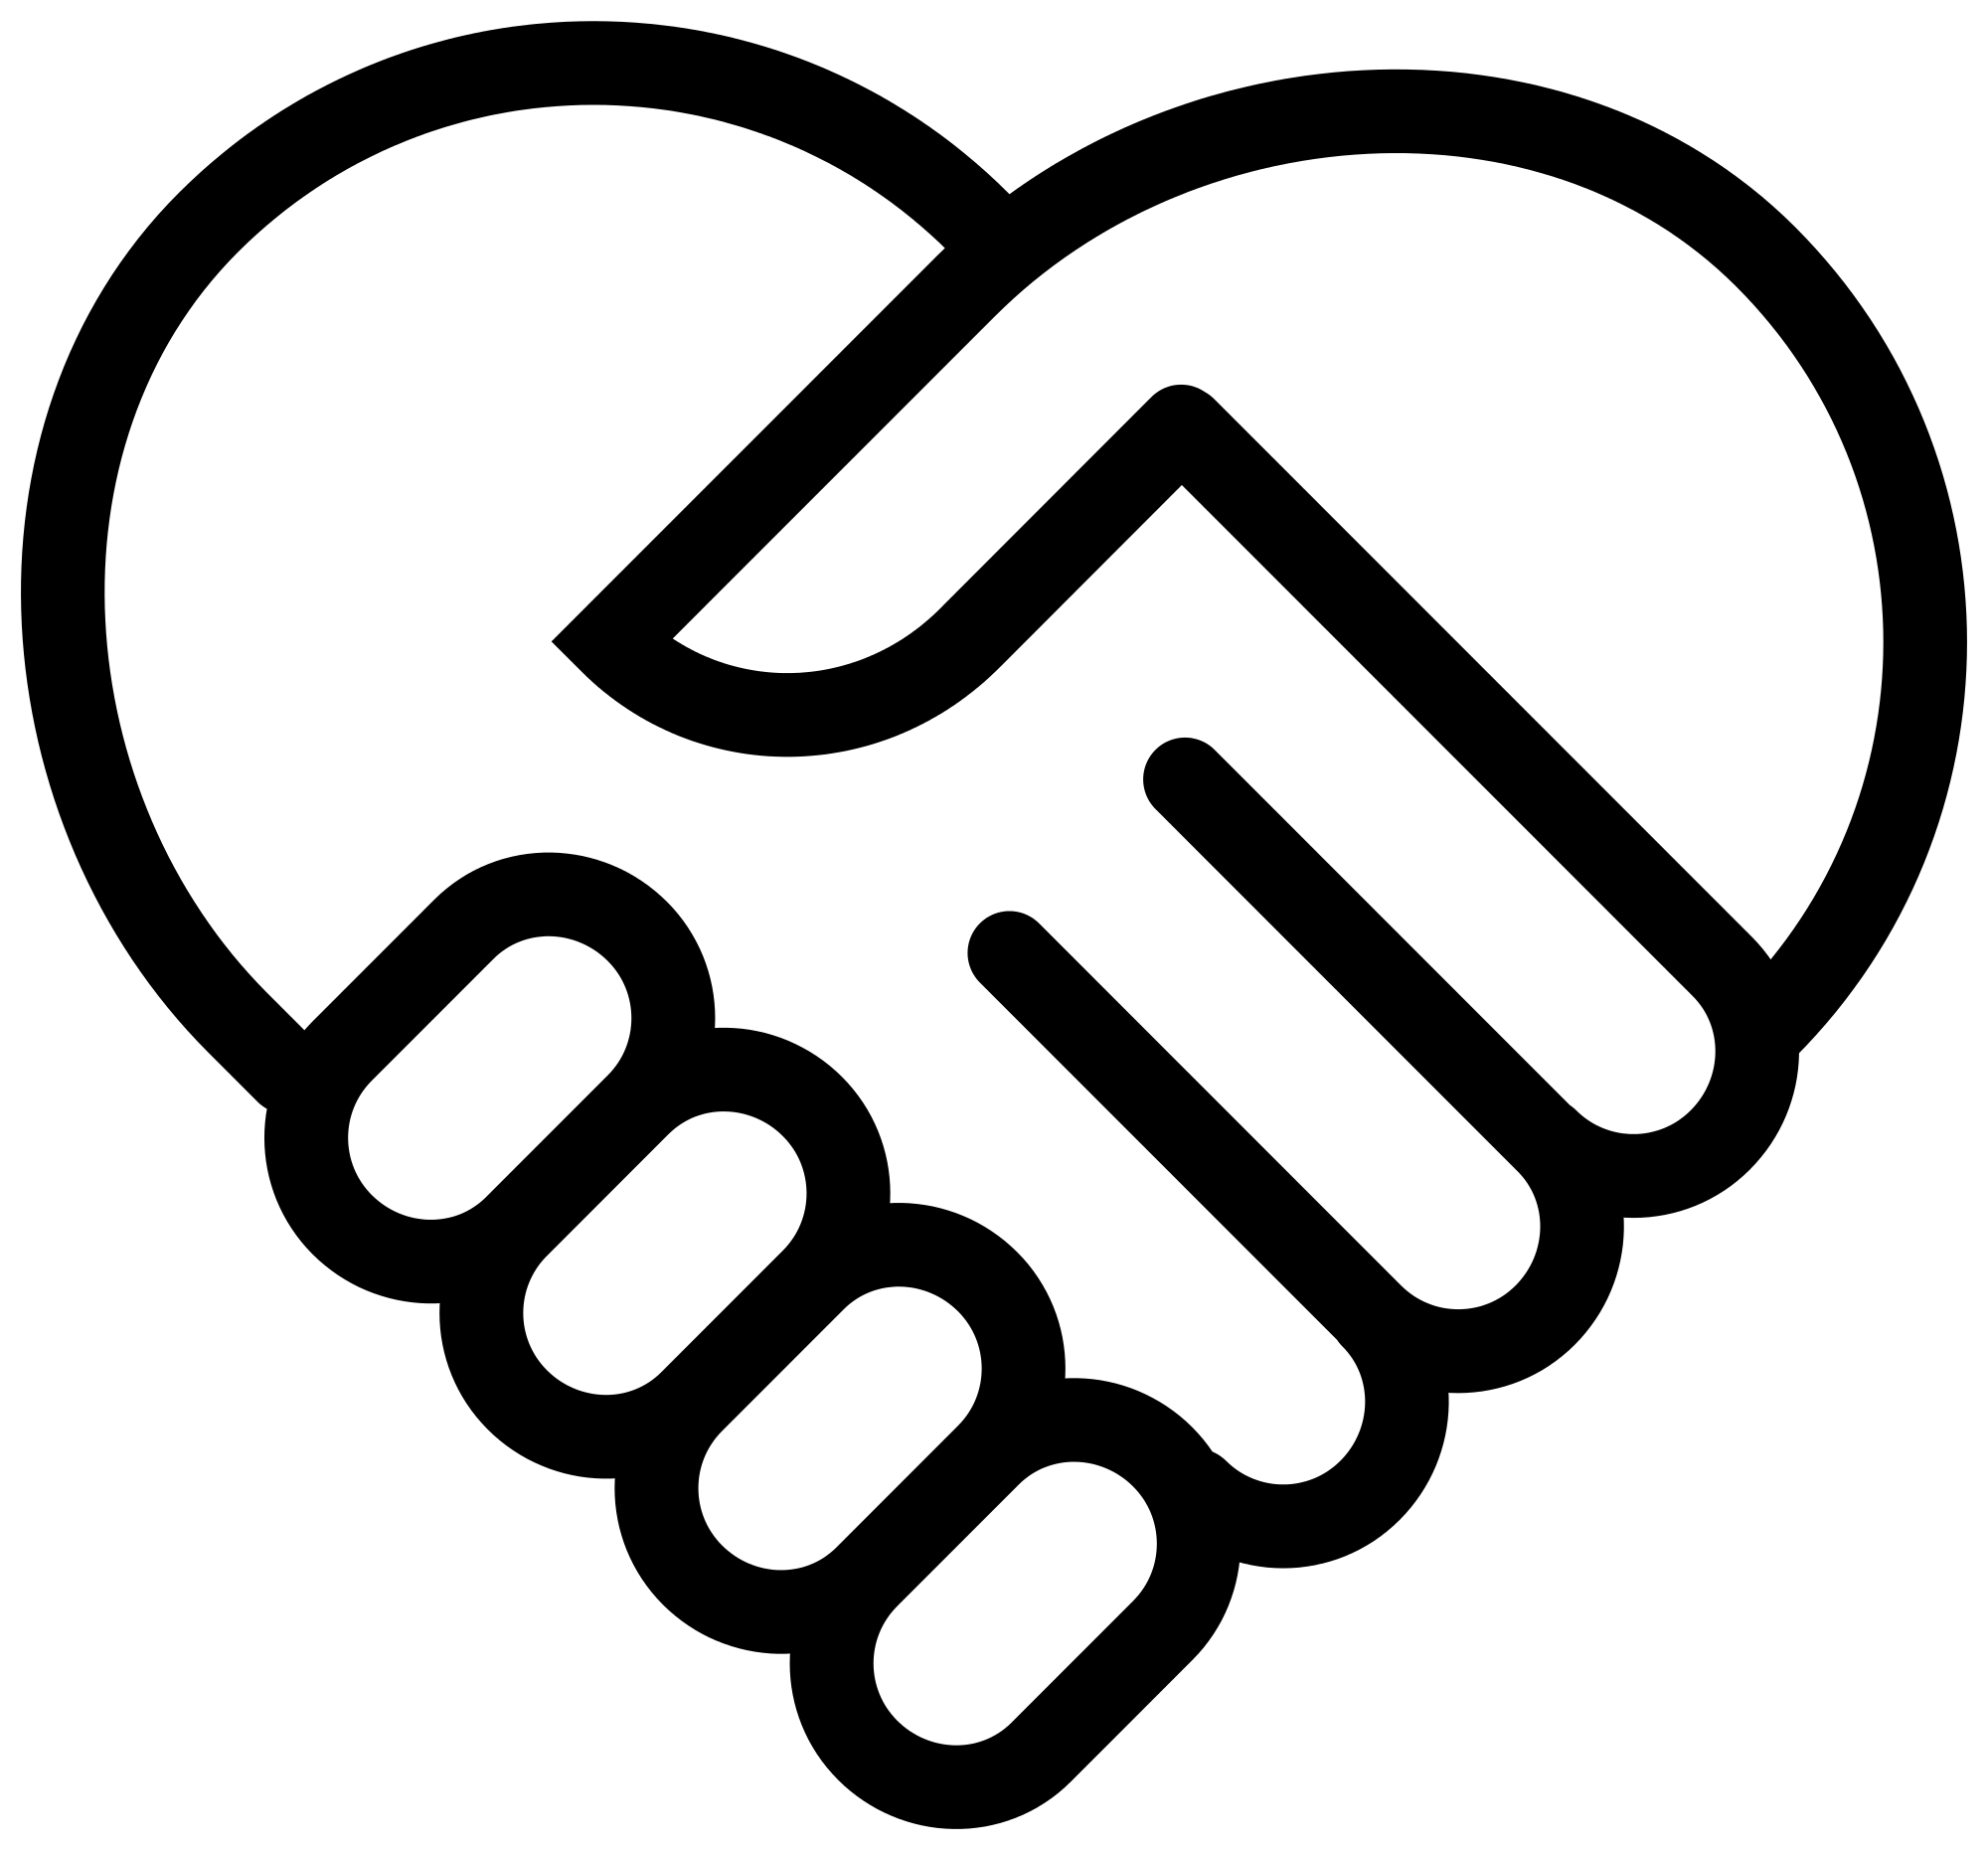 File hand shake svg. Hands clipart heart